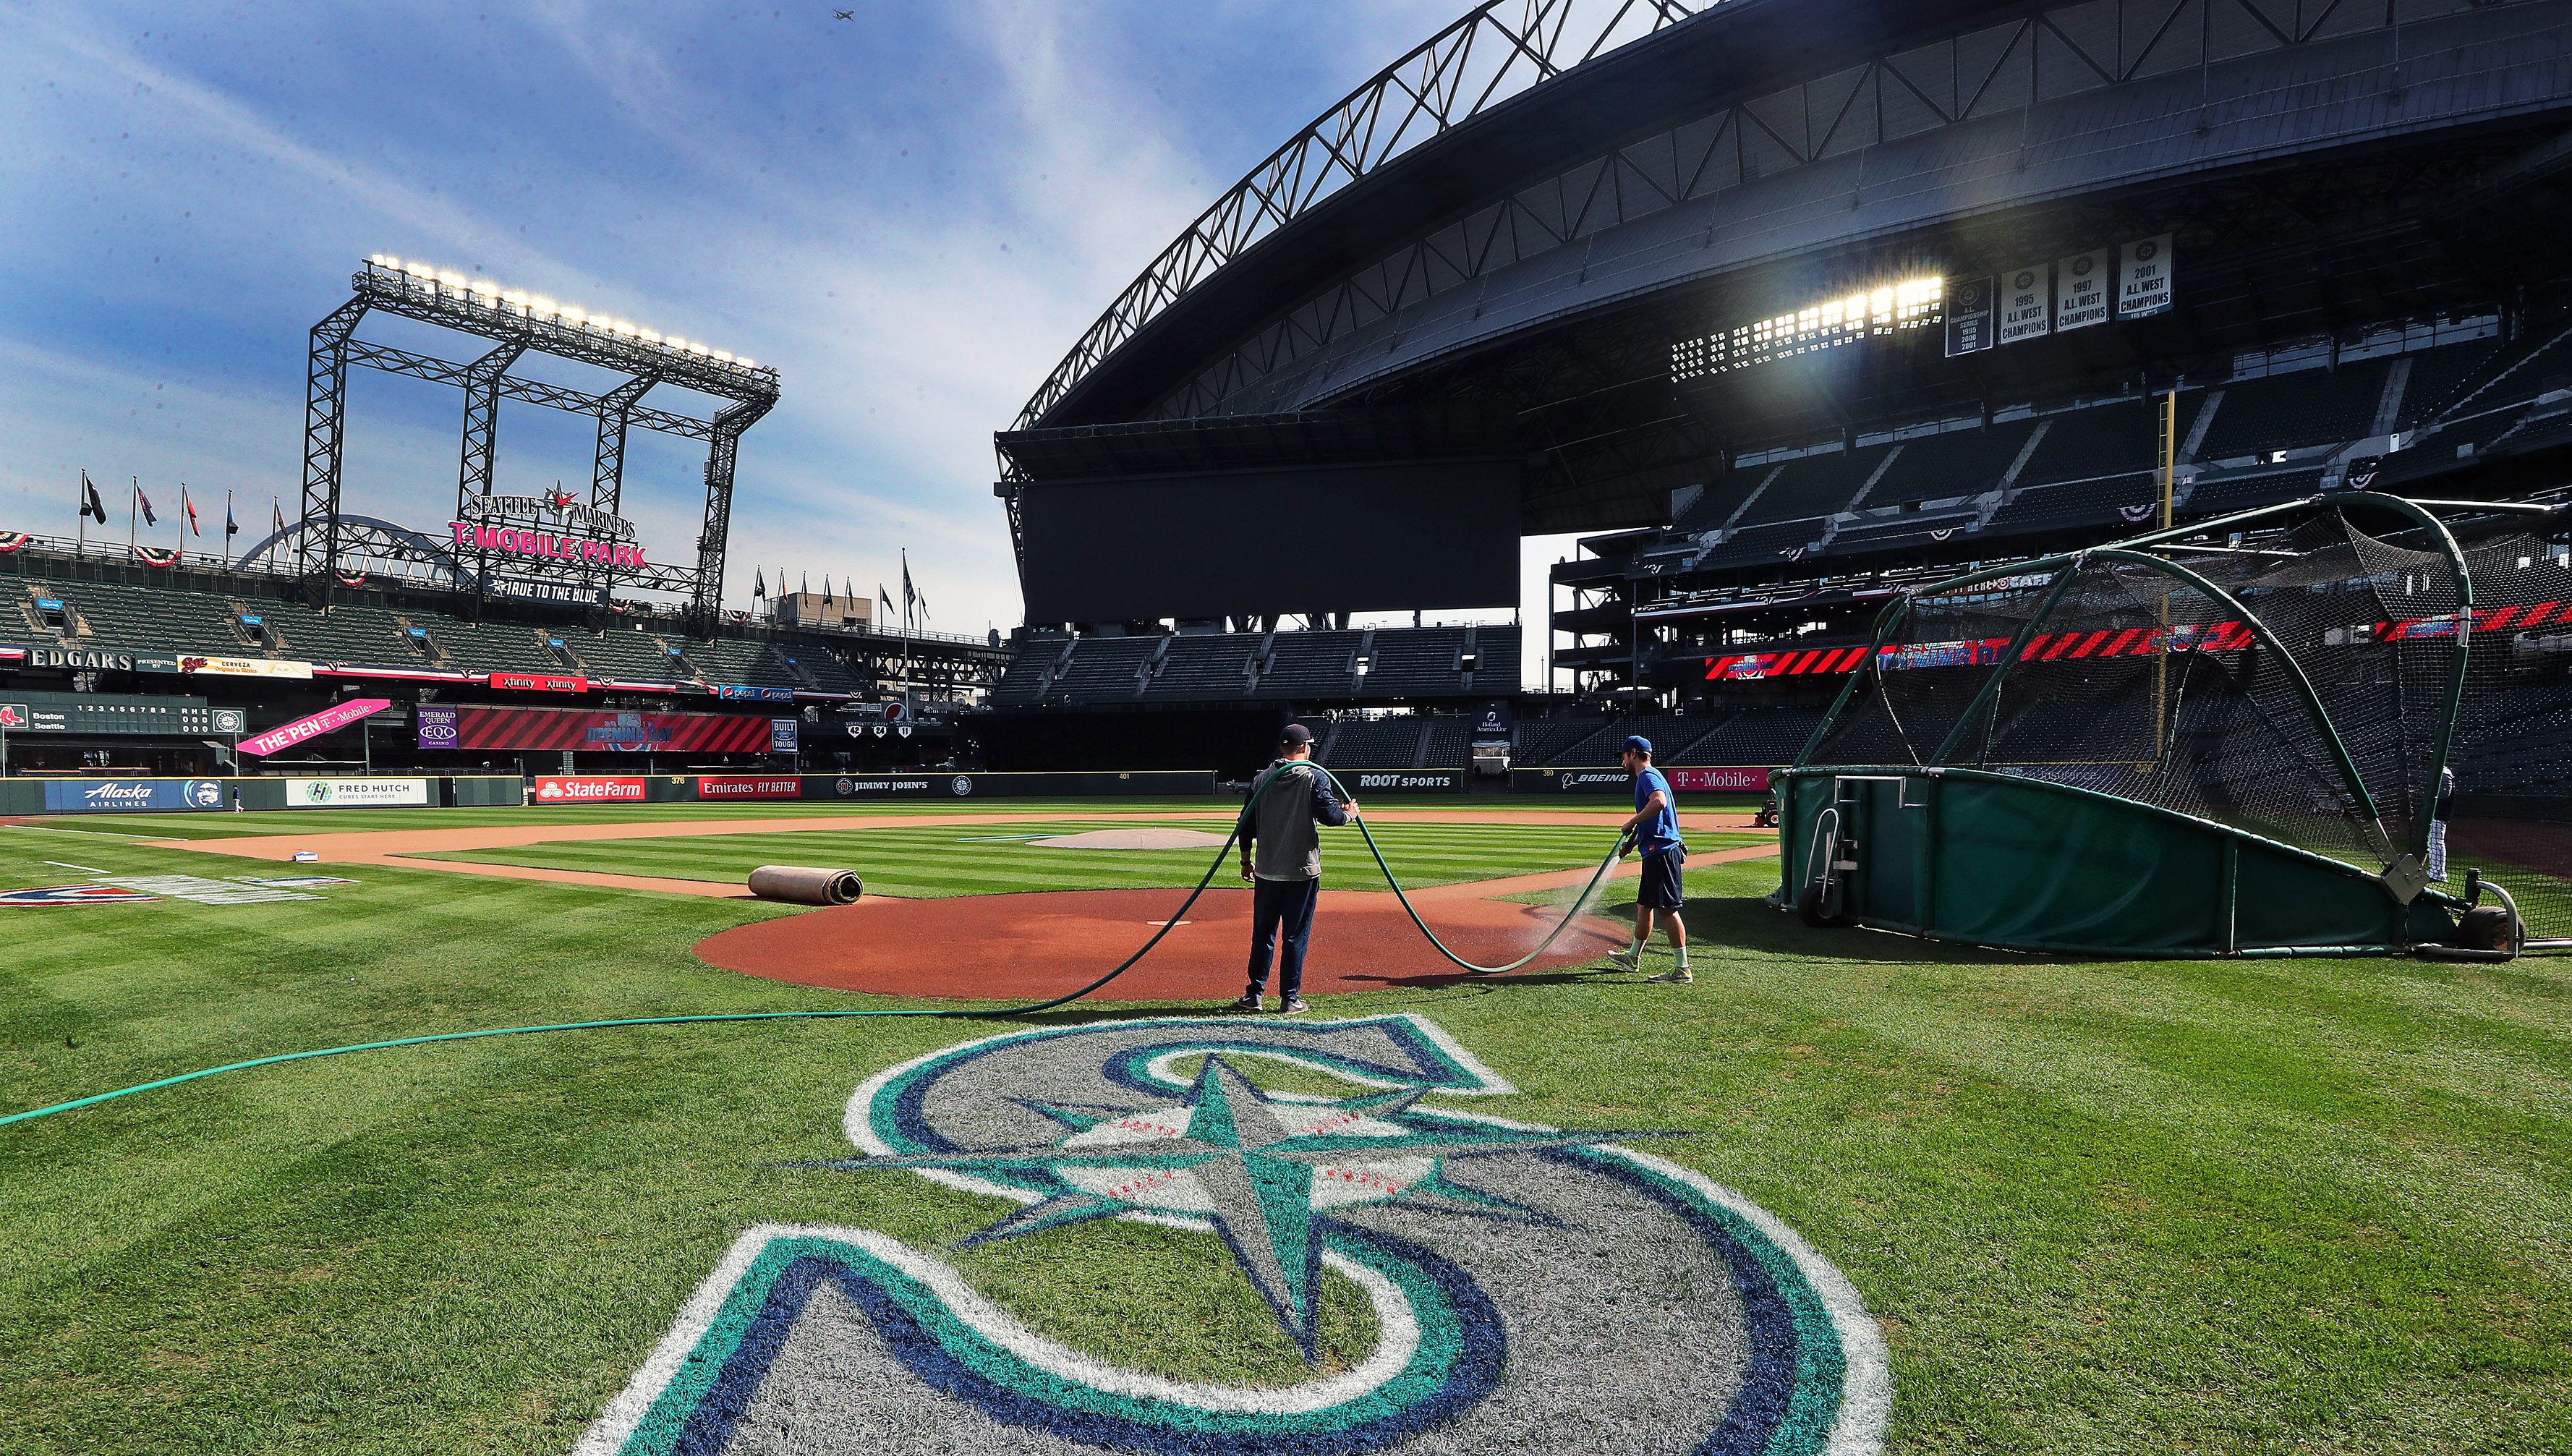 Boston Red Sox Vs Seattle Mariners At T-Mobile Park